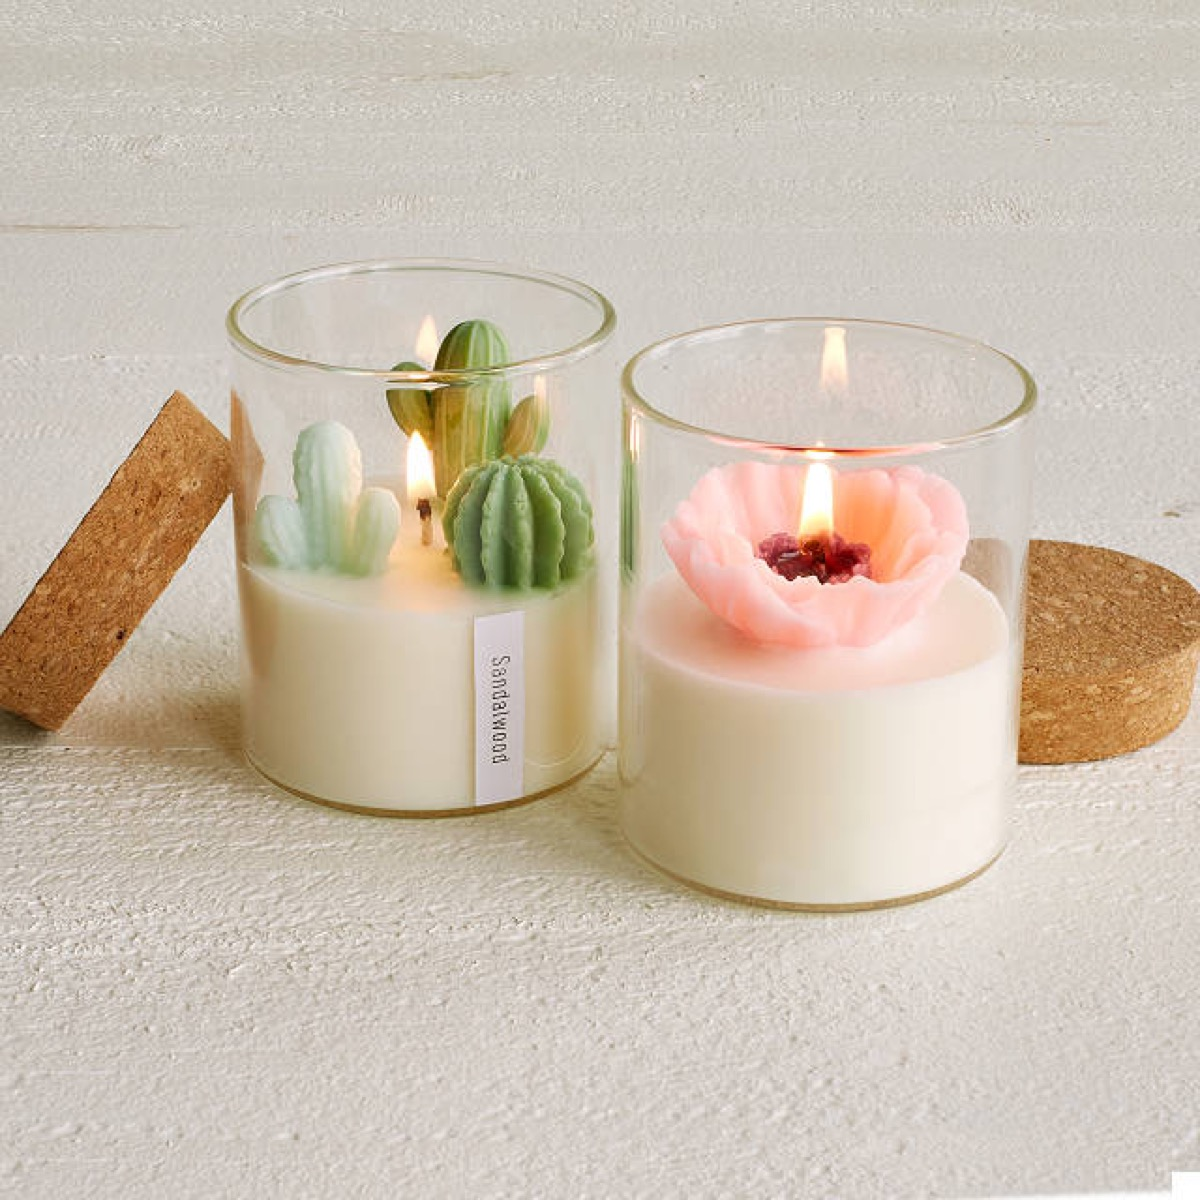 candles with fake cactuses and flowers in them, best gifts for girlfriend